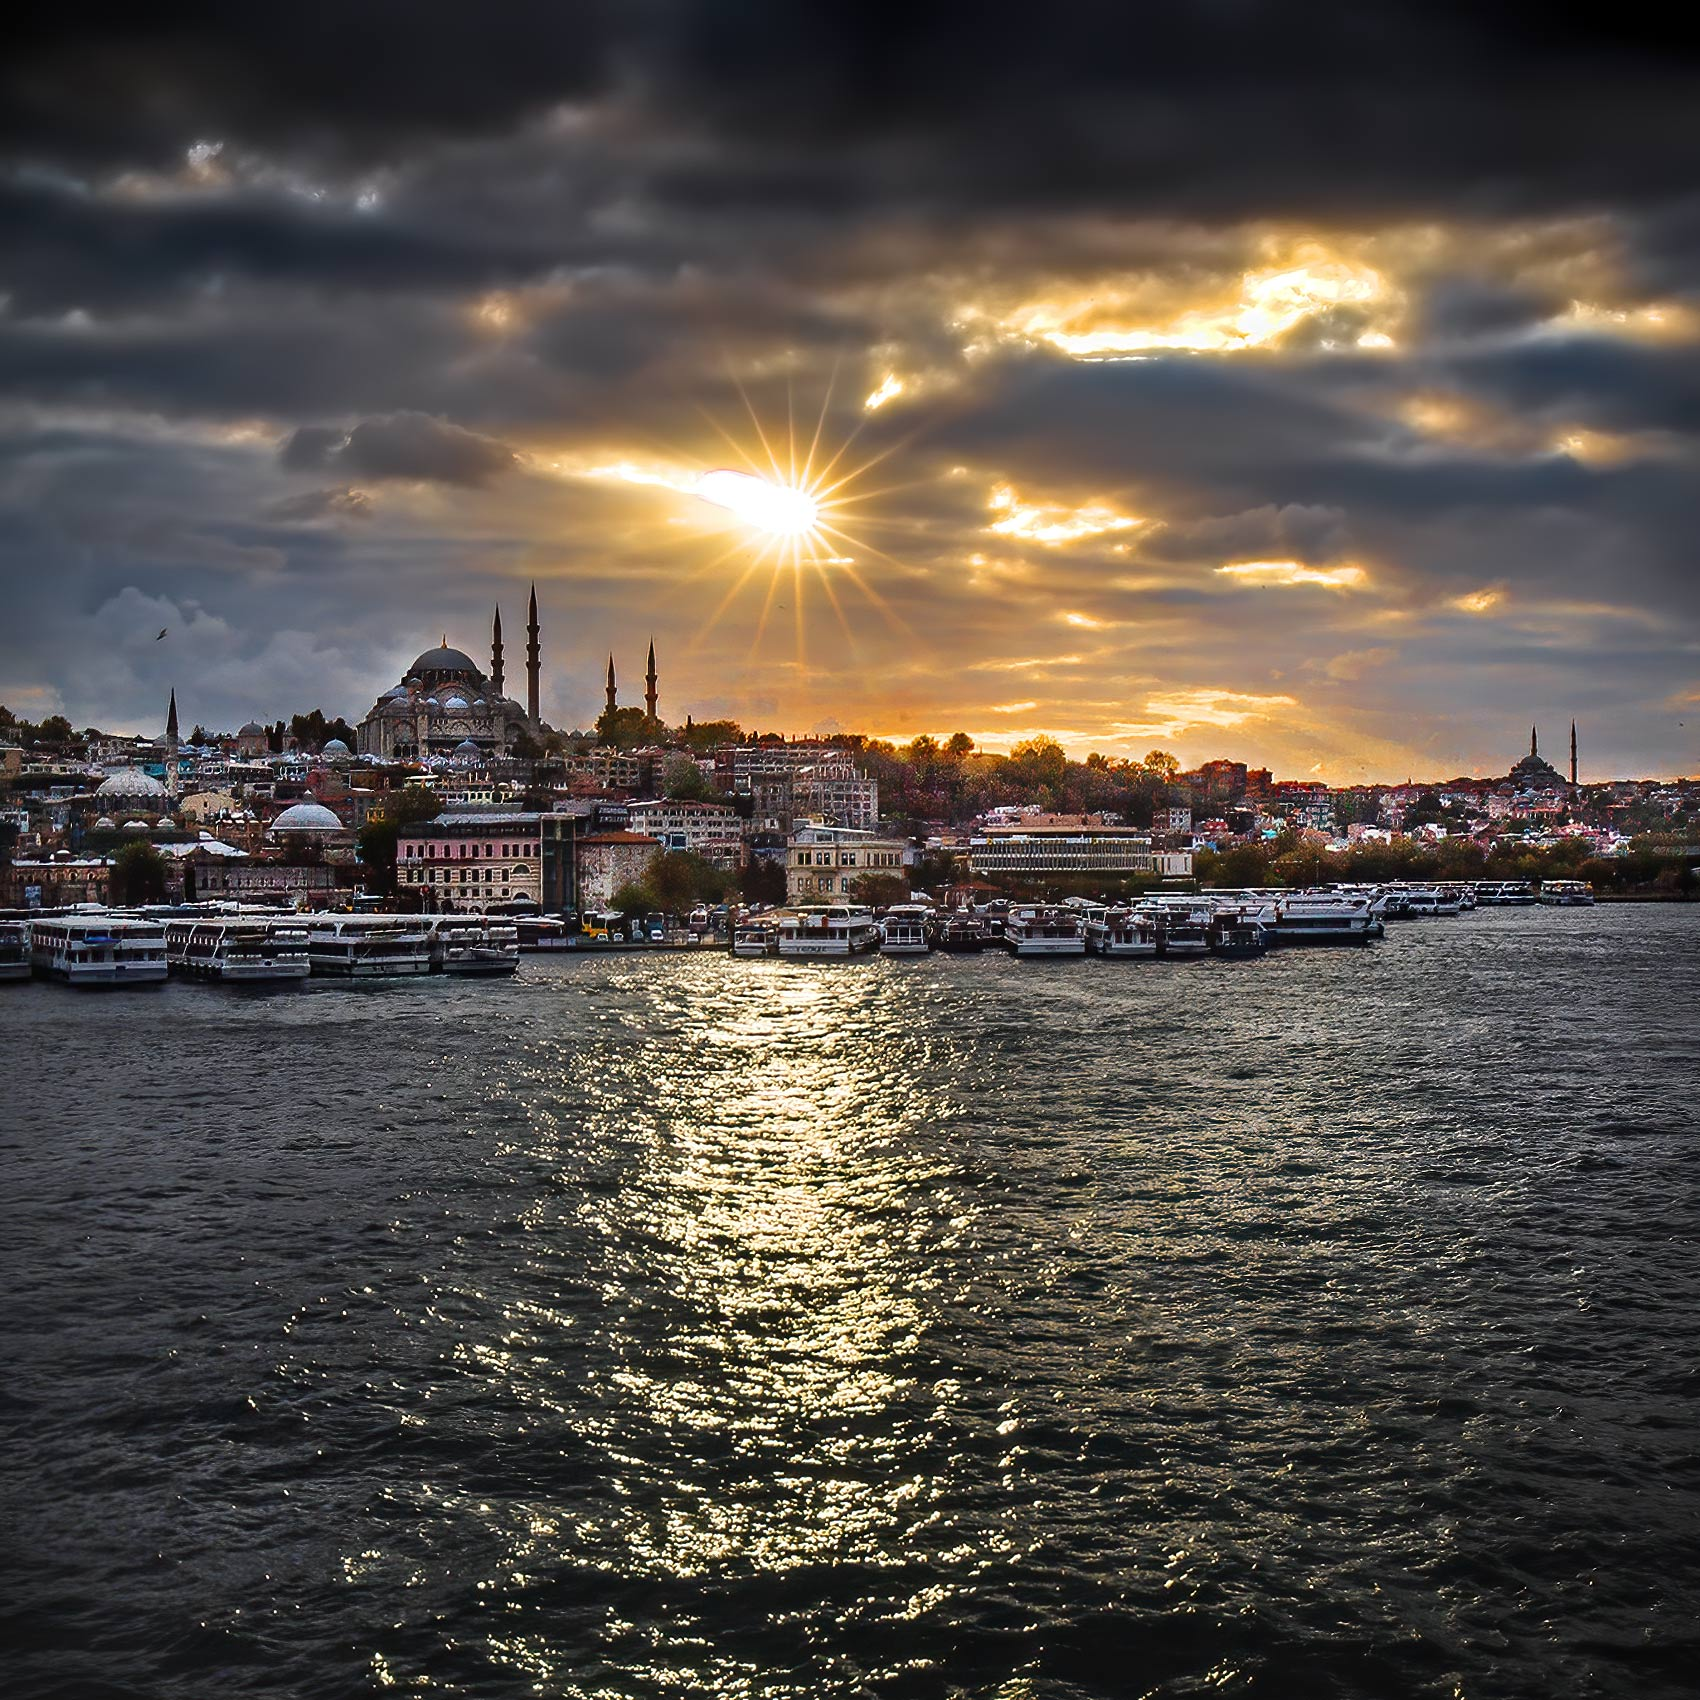 a-brilliant-sunset-over-the-old-city-of-istanbul